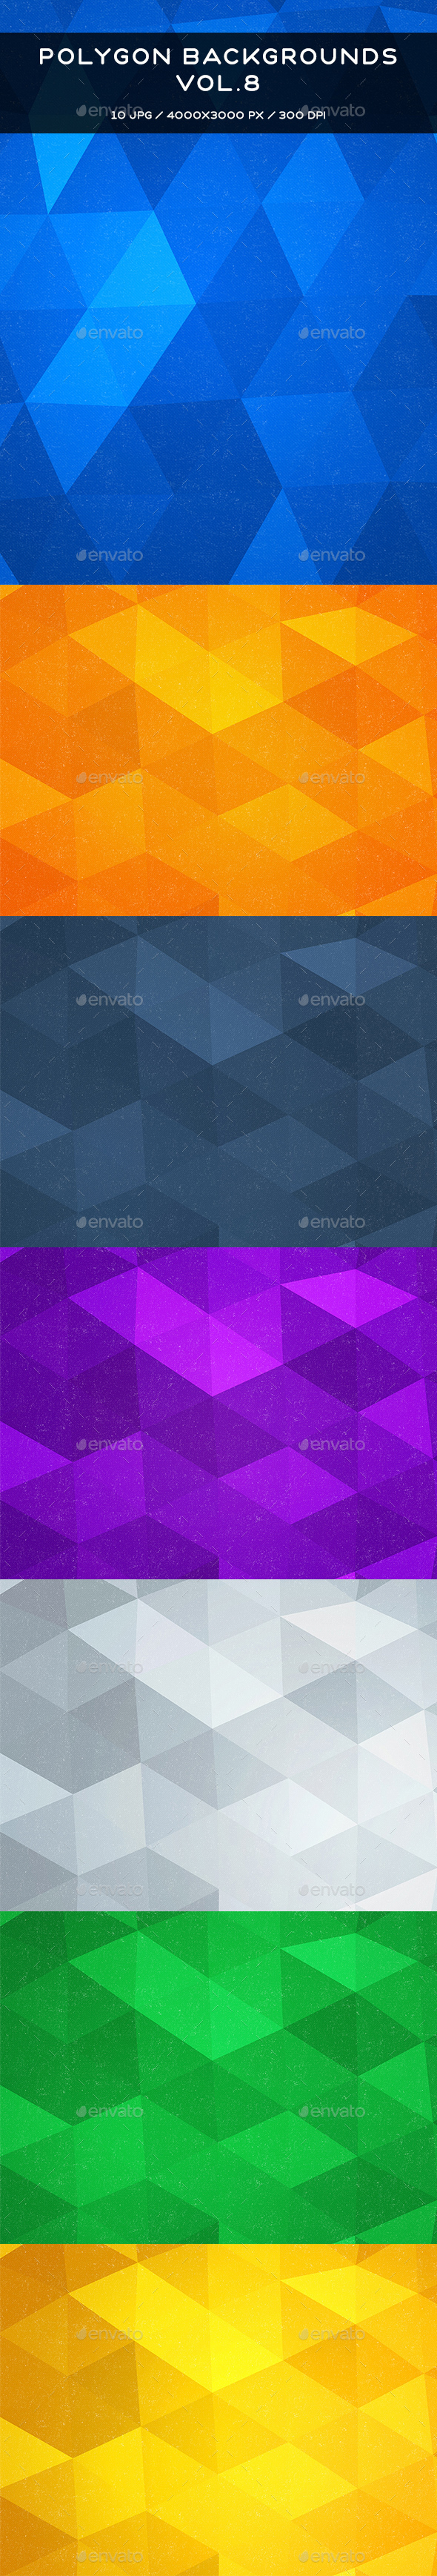 Polygon Backgrounds Vol.8 - Abstract Backgrounds